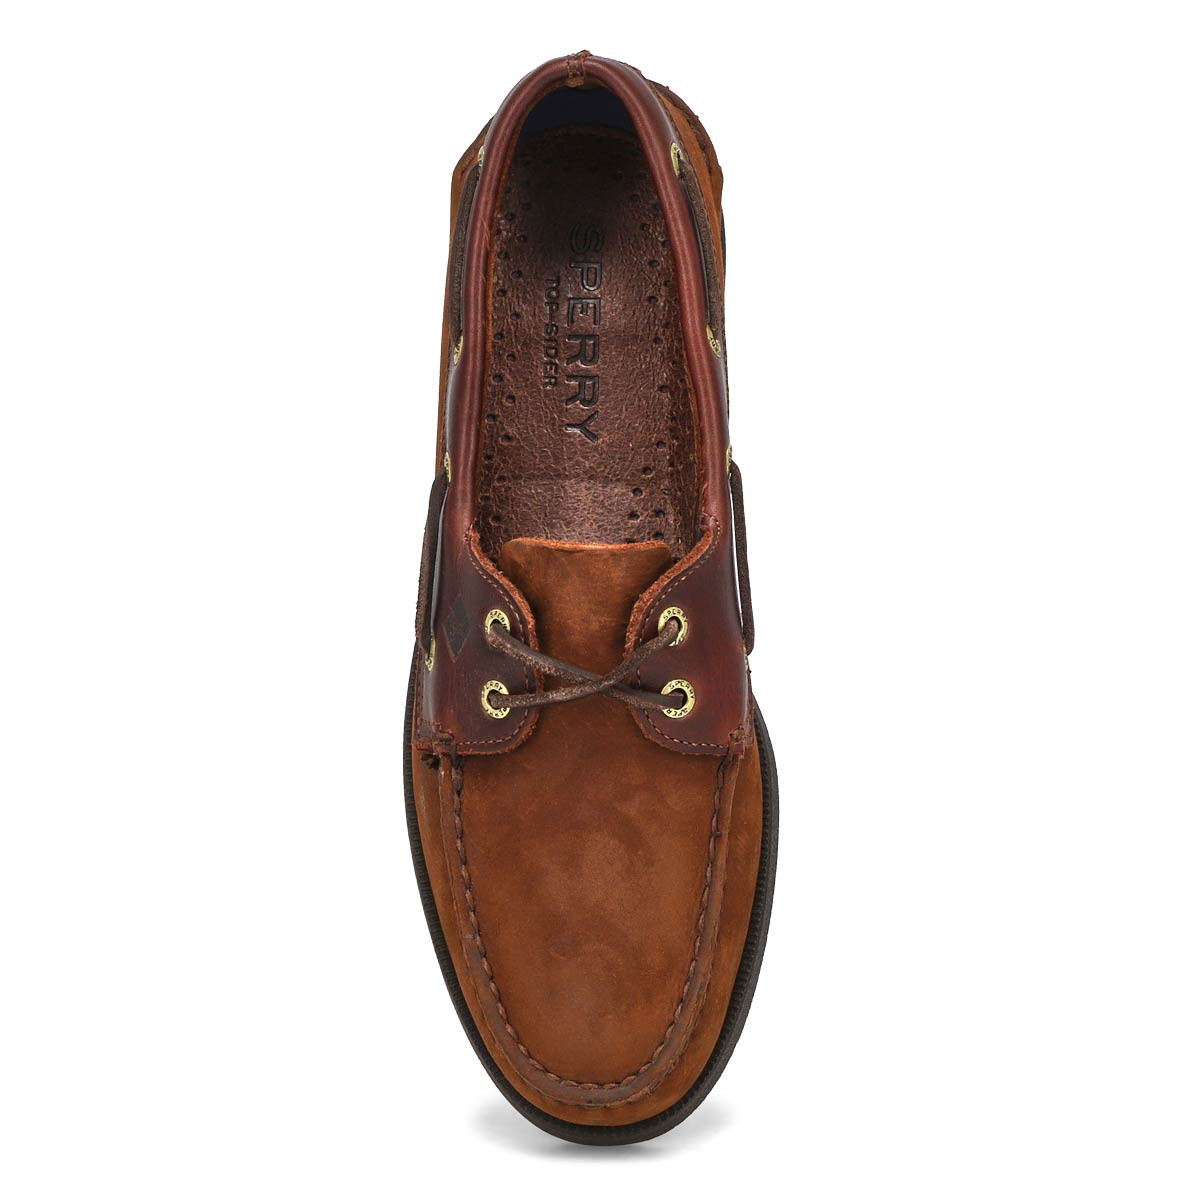 Mns A/O 2 eye brown boat shoe